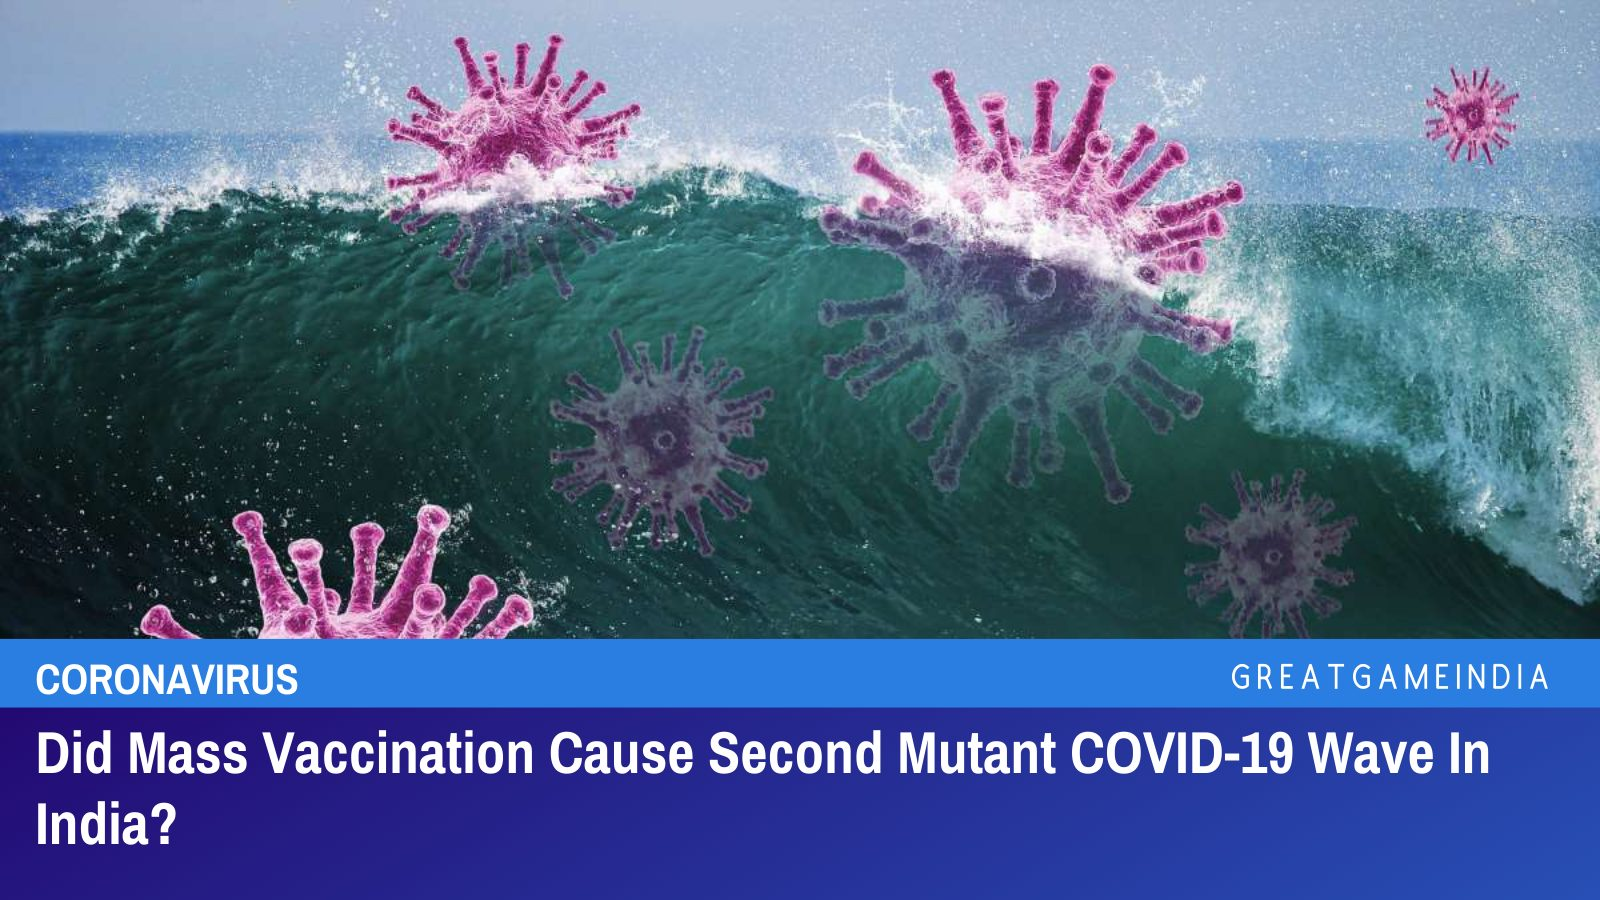 Did Mass Vaccination Cause Second Mutant COVID-19 Wave In India?